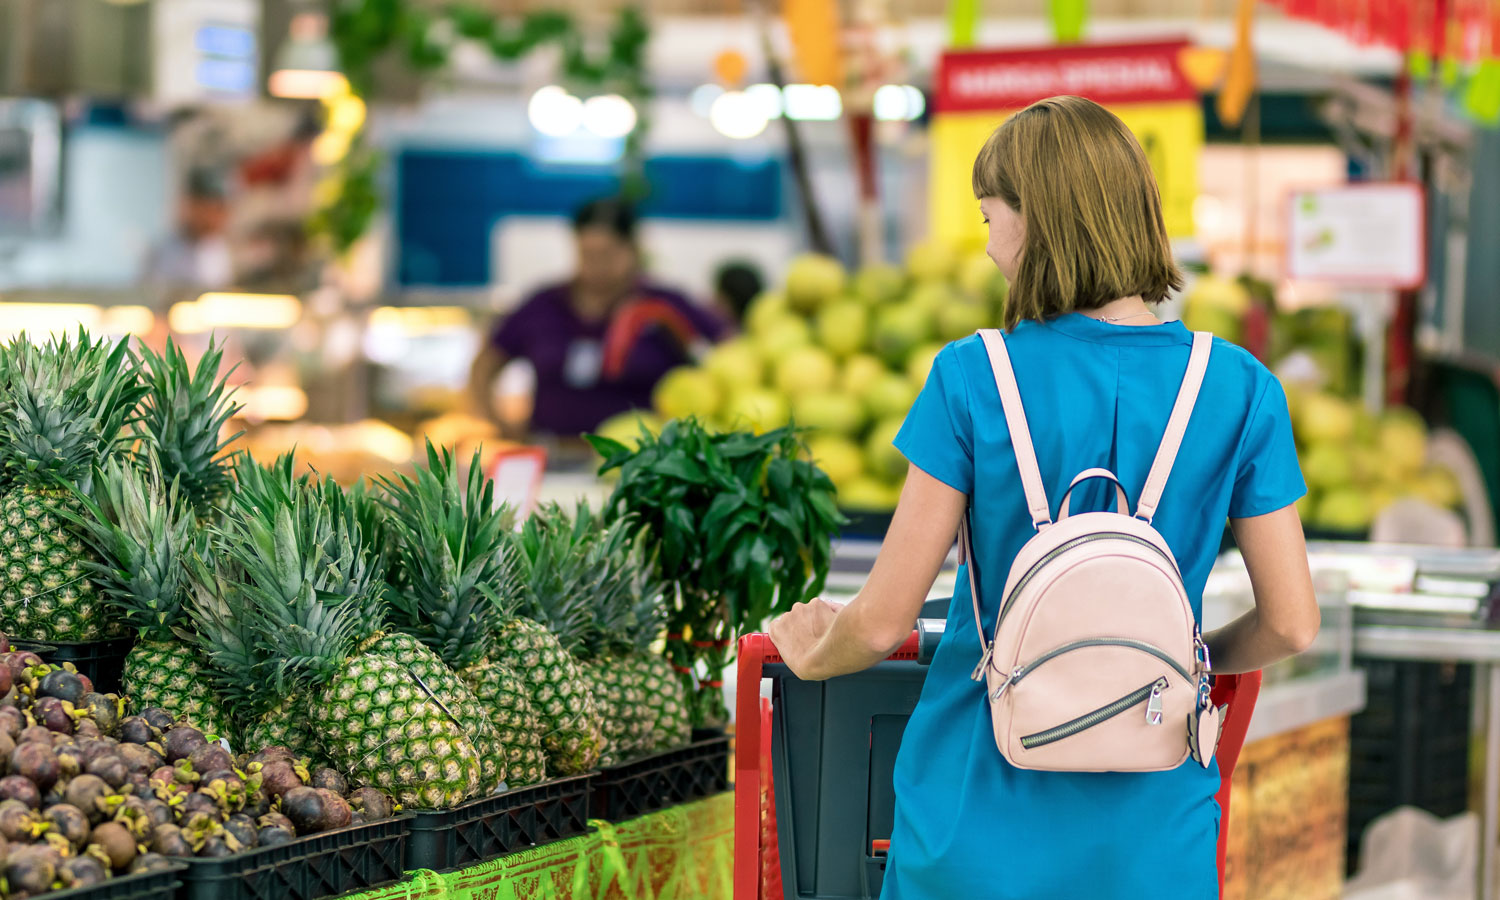 A woman in the fruit section of the grocery aisle in front of a stand of pineapples